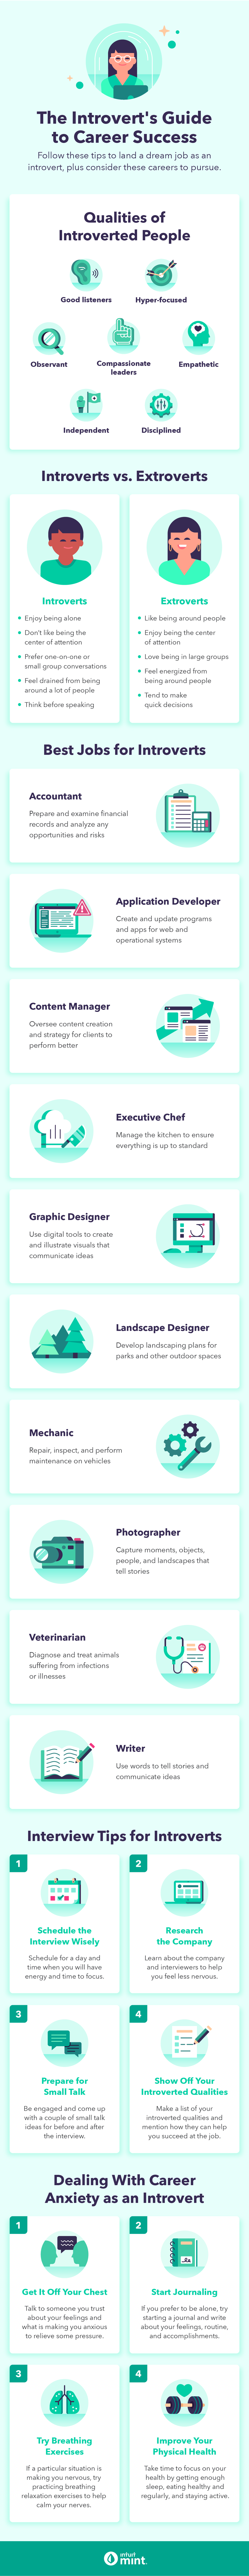 The best jobs for introverts infographic